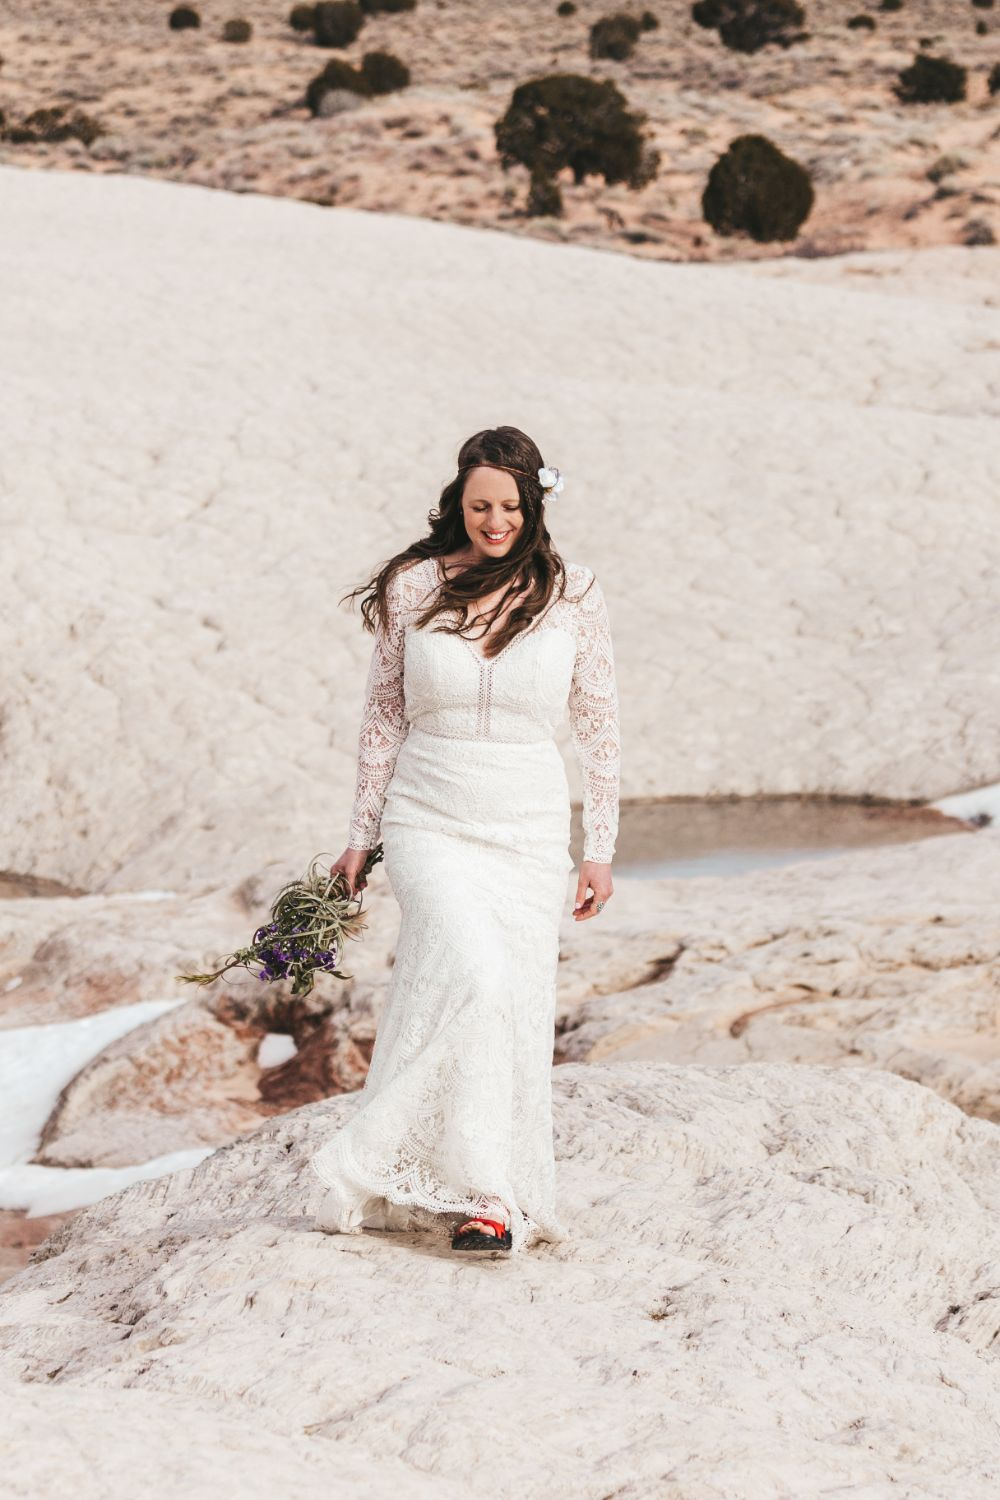 bride-walks-through-utah-desert